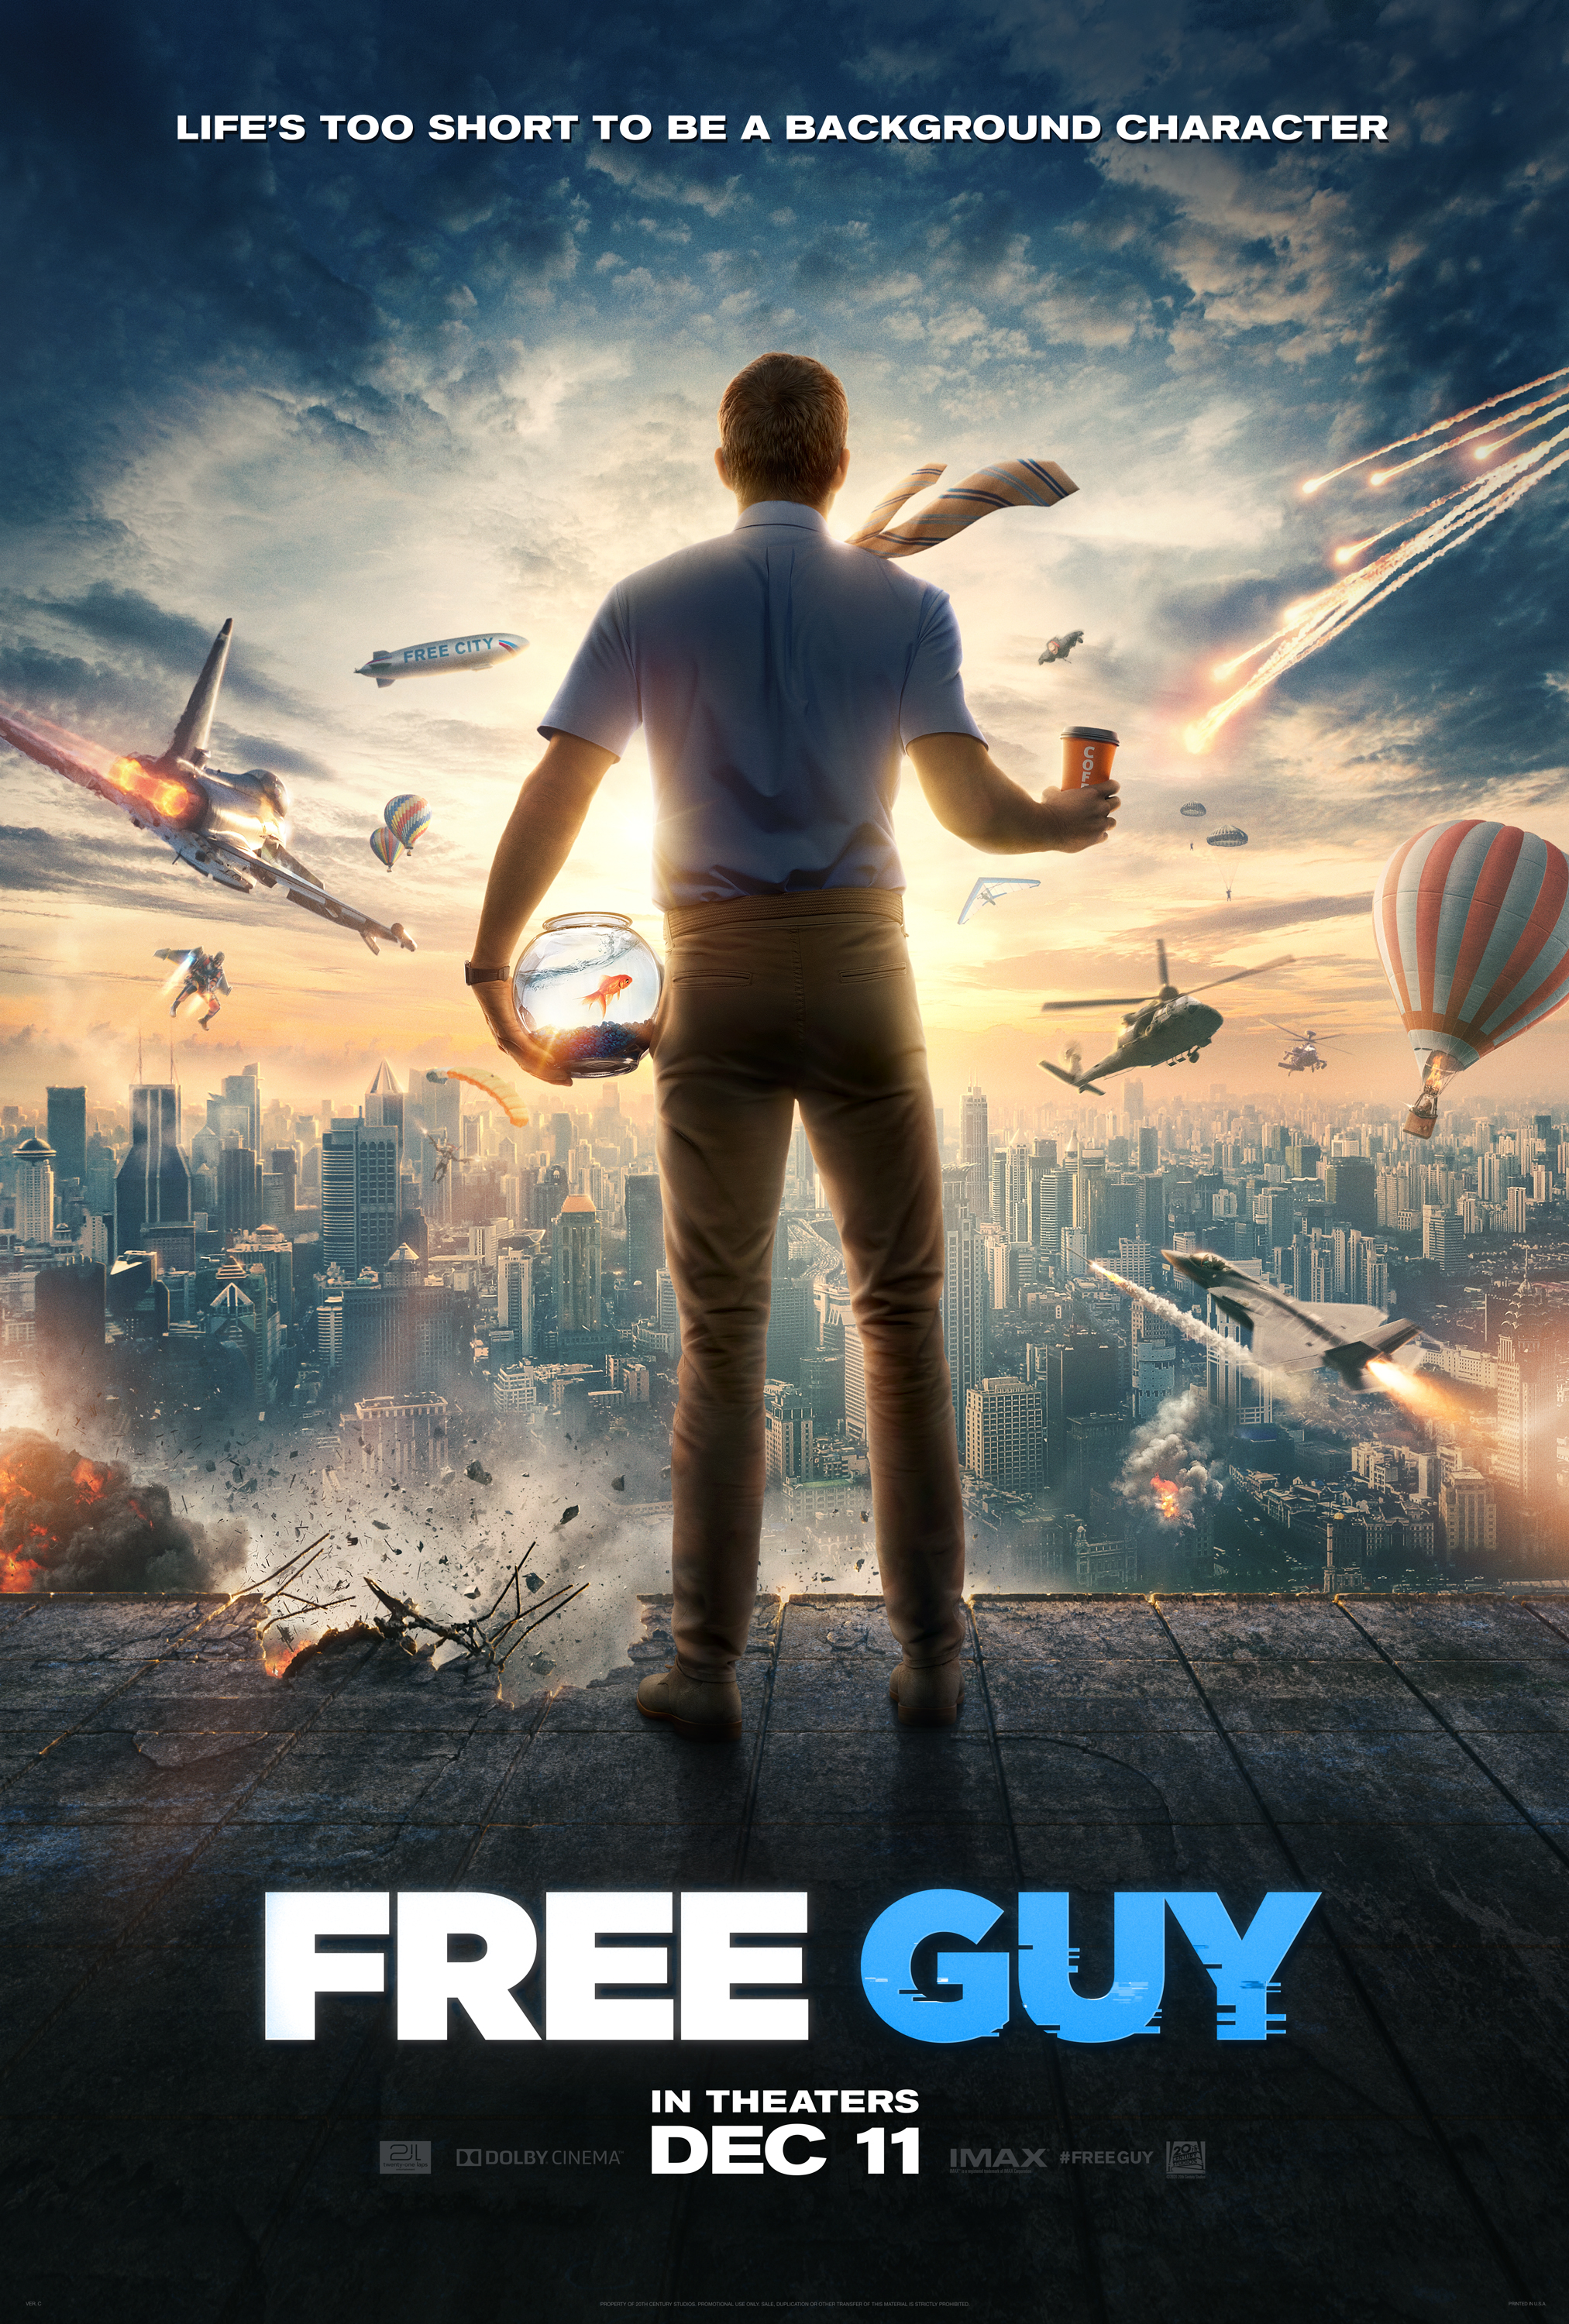 New Trailer and Poster for 'Free Guy' - Image 1